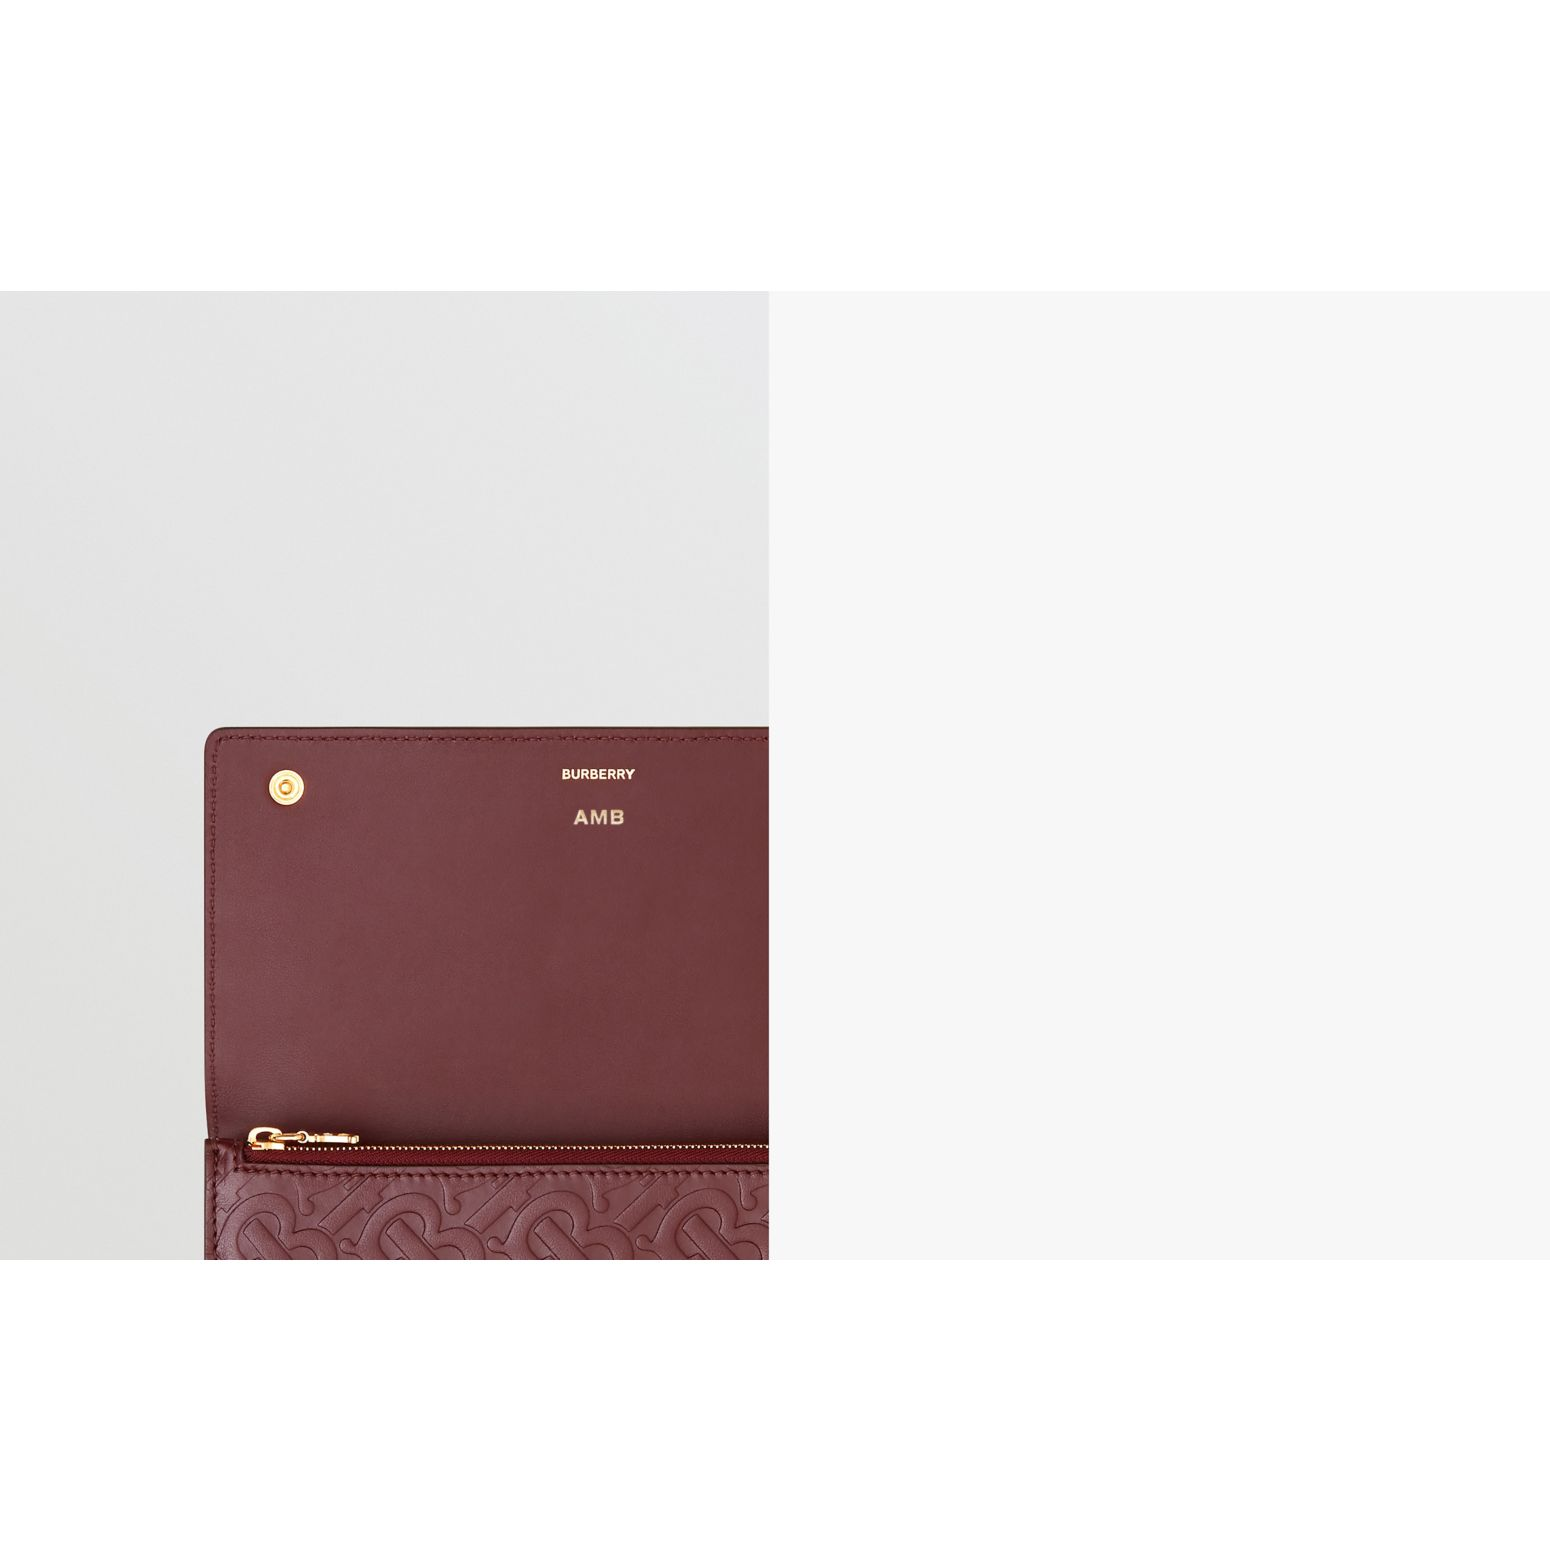 Monogram Leather Continental Wallet in Oxblood - Women | Burberry Canada - gallery image 1